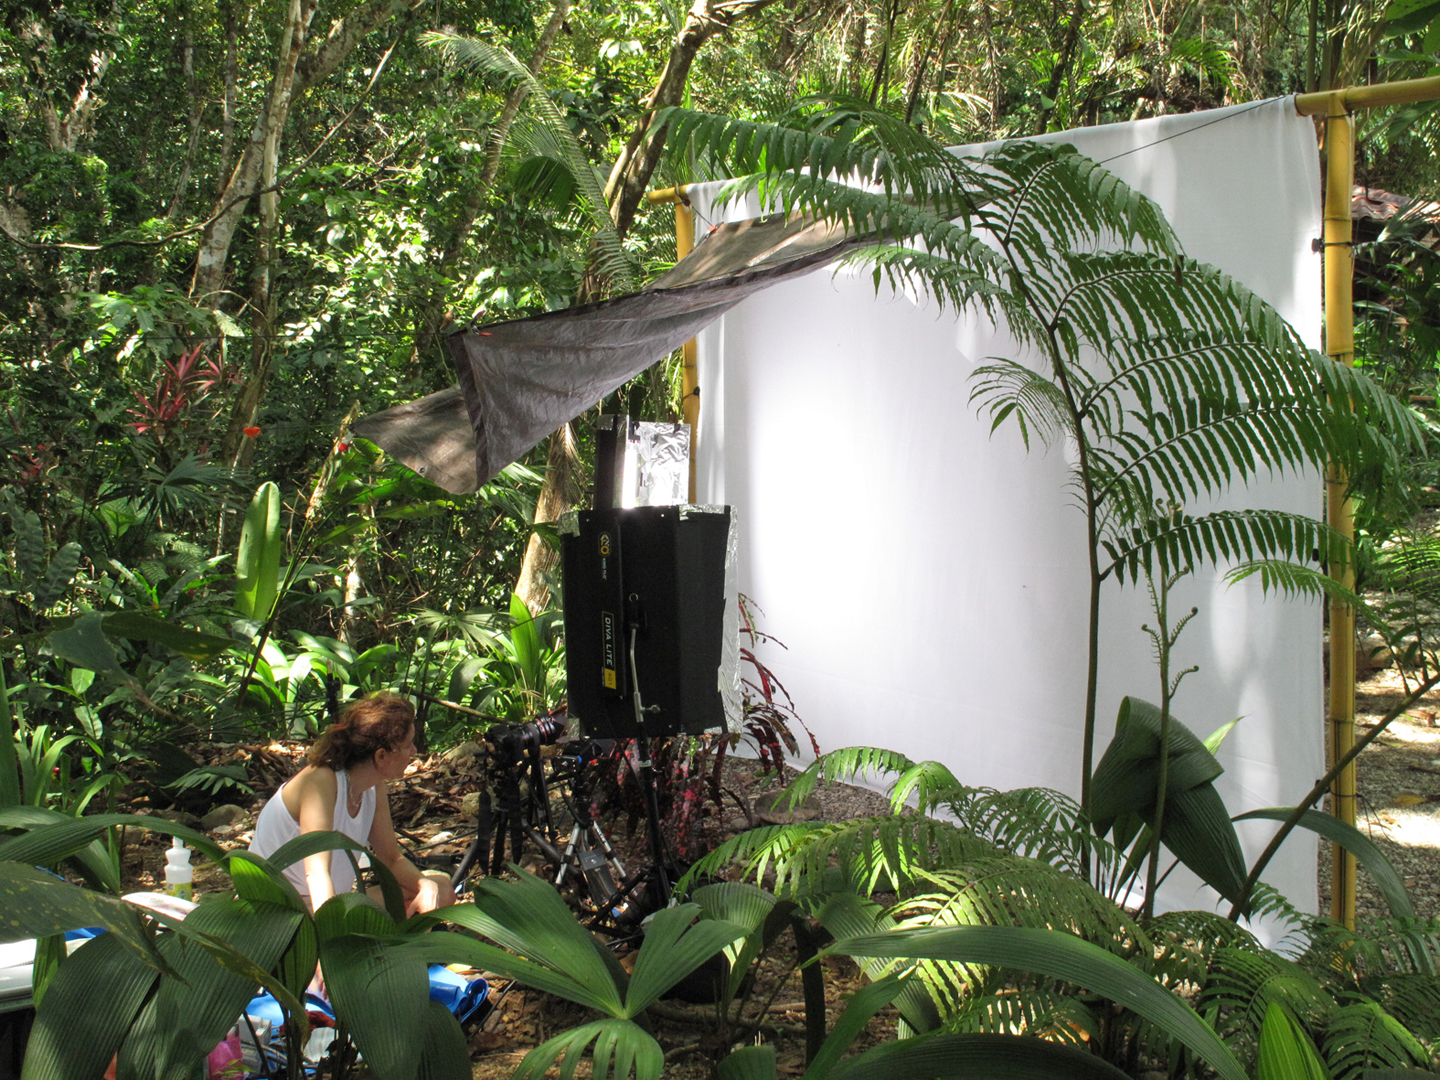 Photographing ANTWORKS IN PROGRESS, Costa Rica